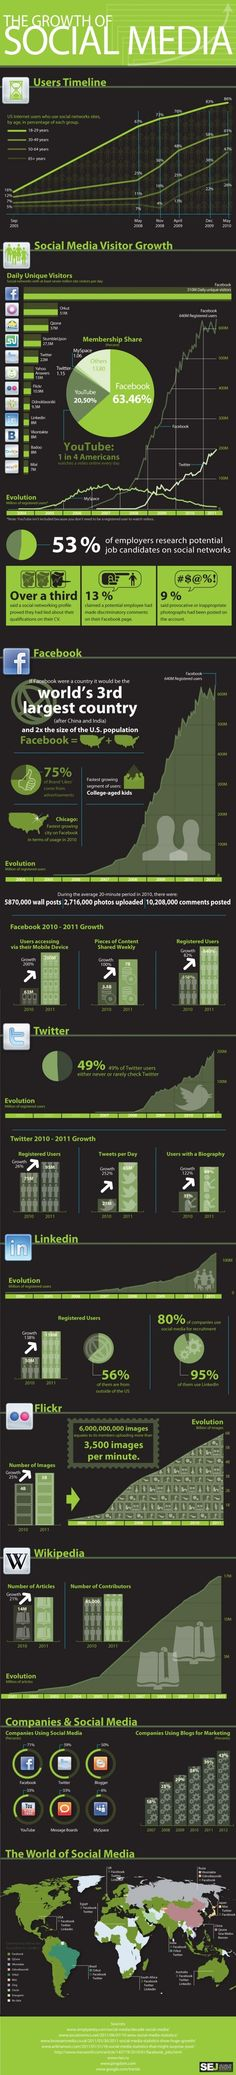 Infographic: The Growth of Social Media in 2011 | Digital Buzz Blog - via http://bit.ly/epinner